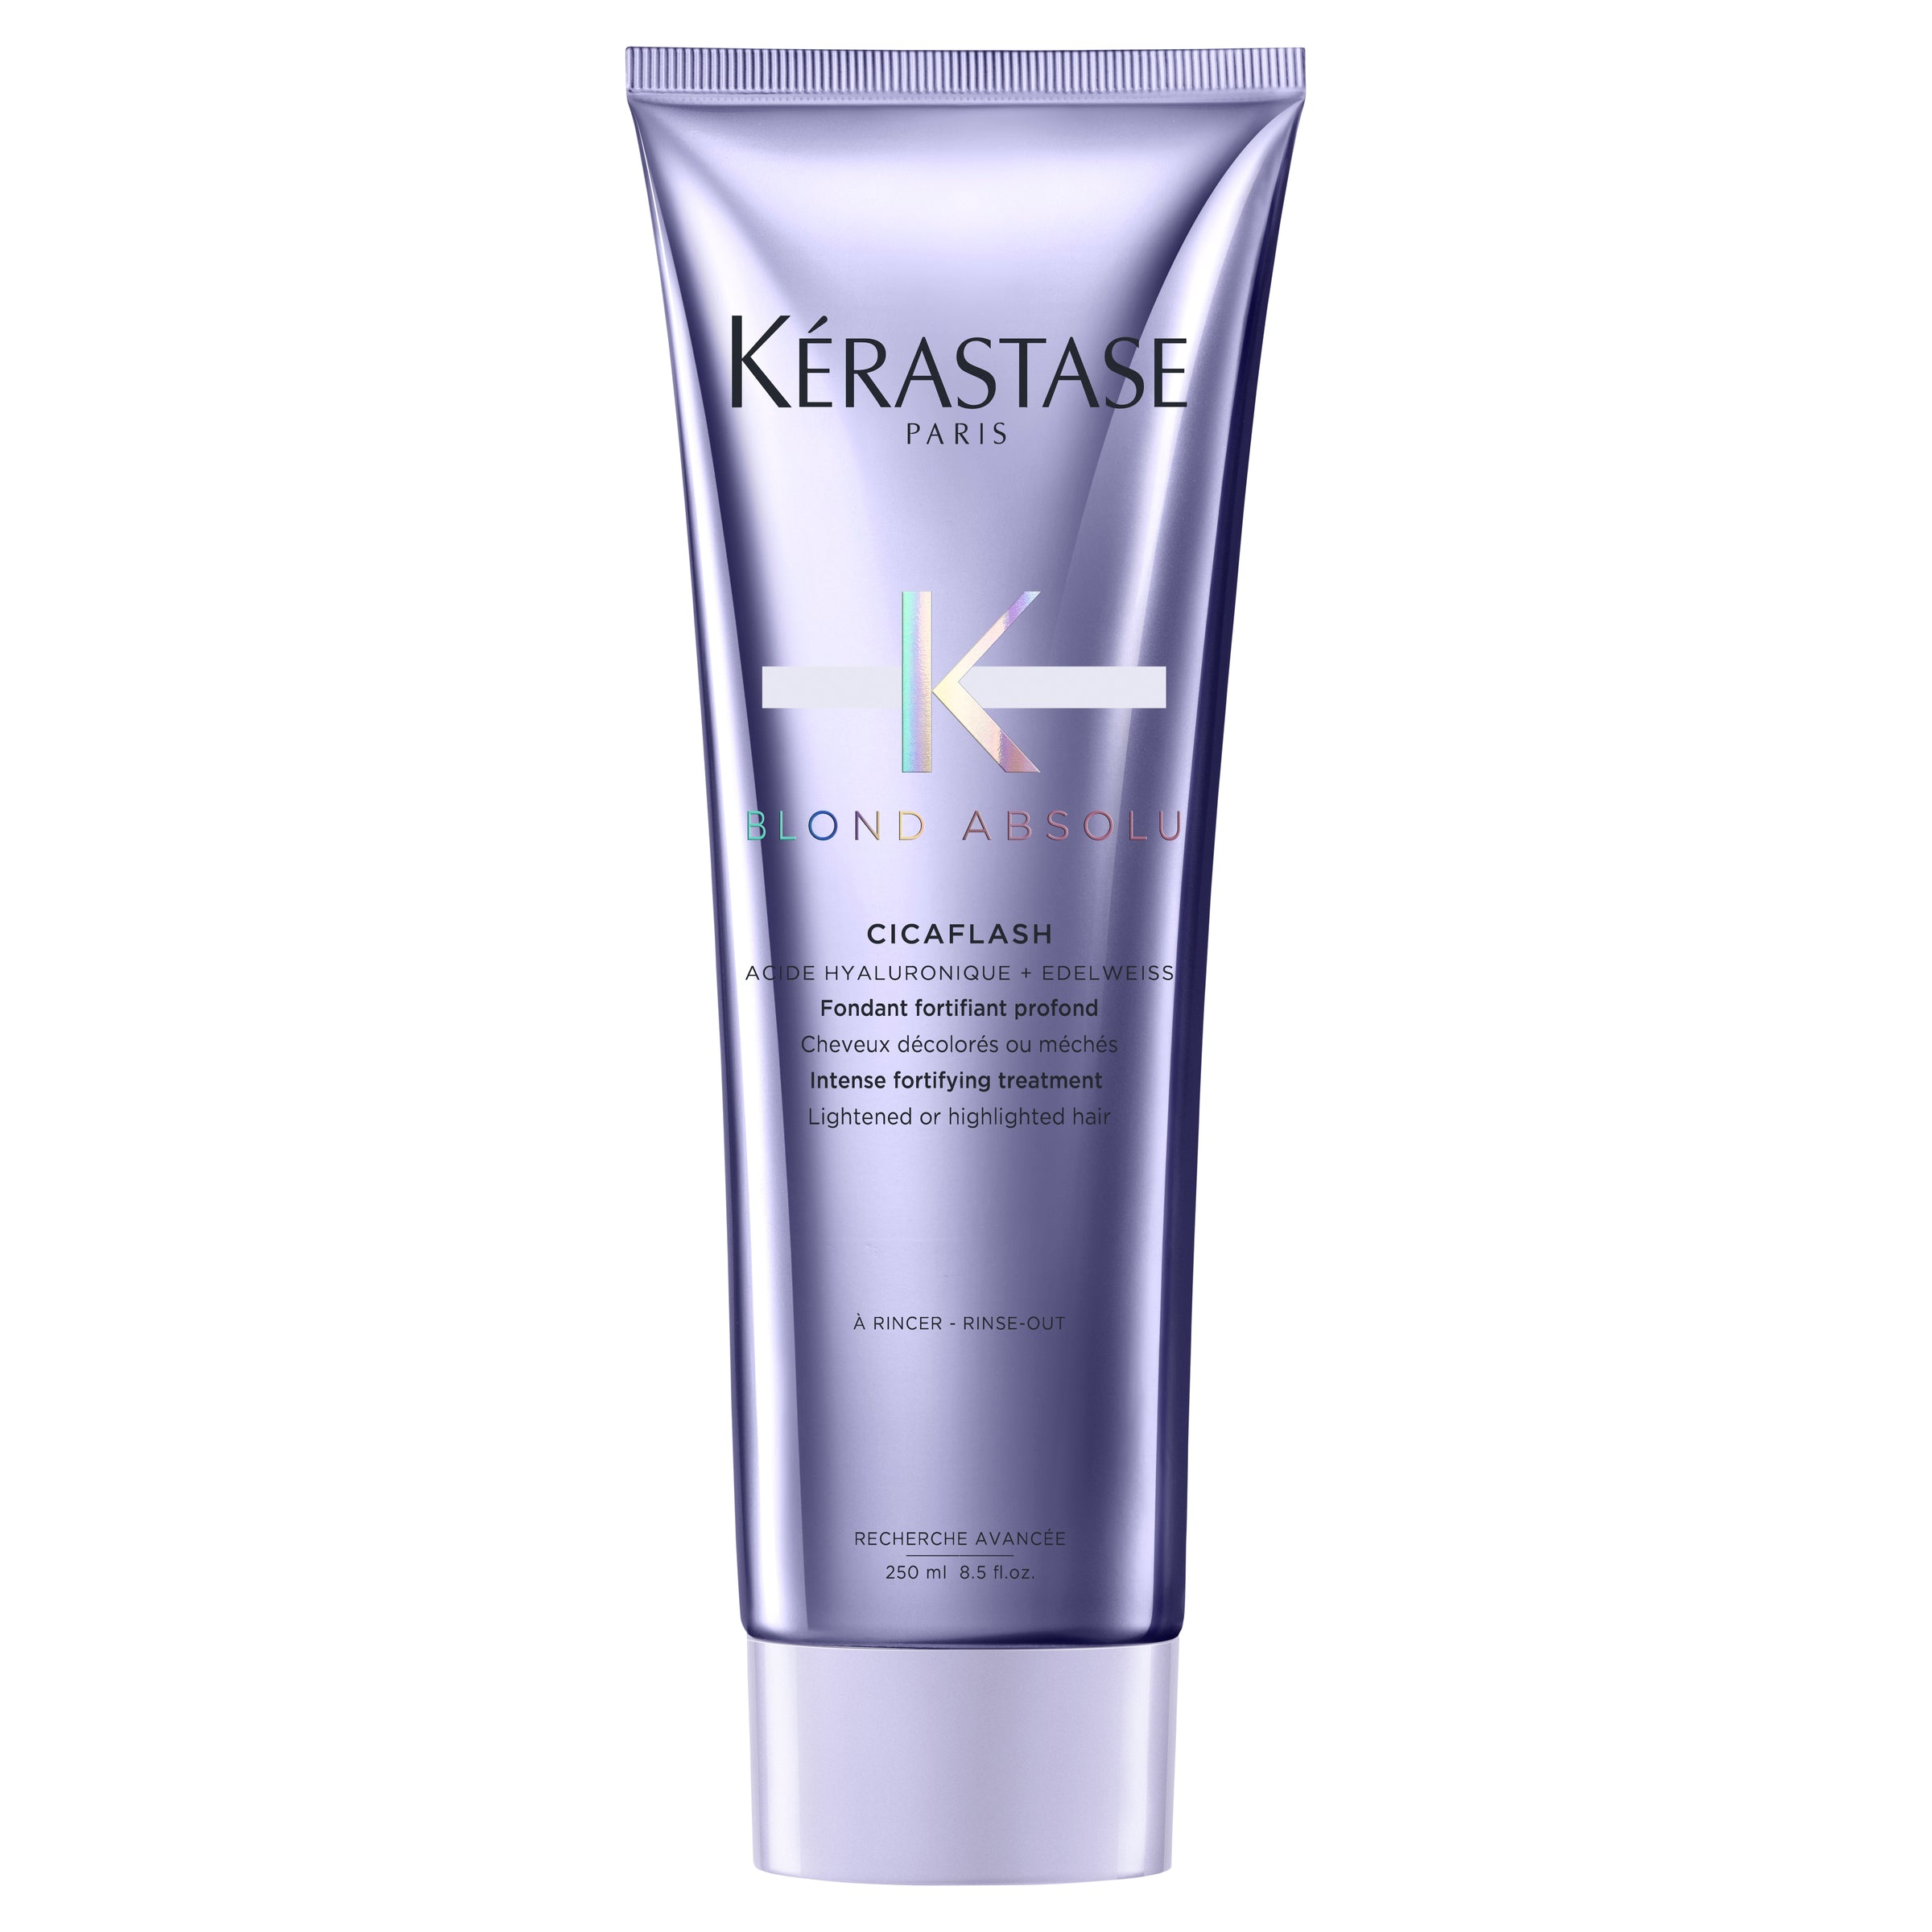 Kérastase Blond Cicaflash 250ml